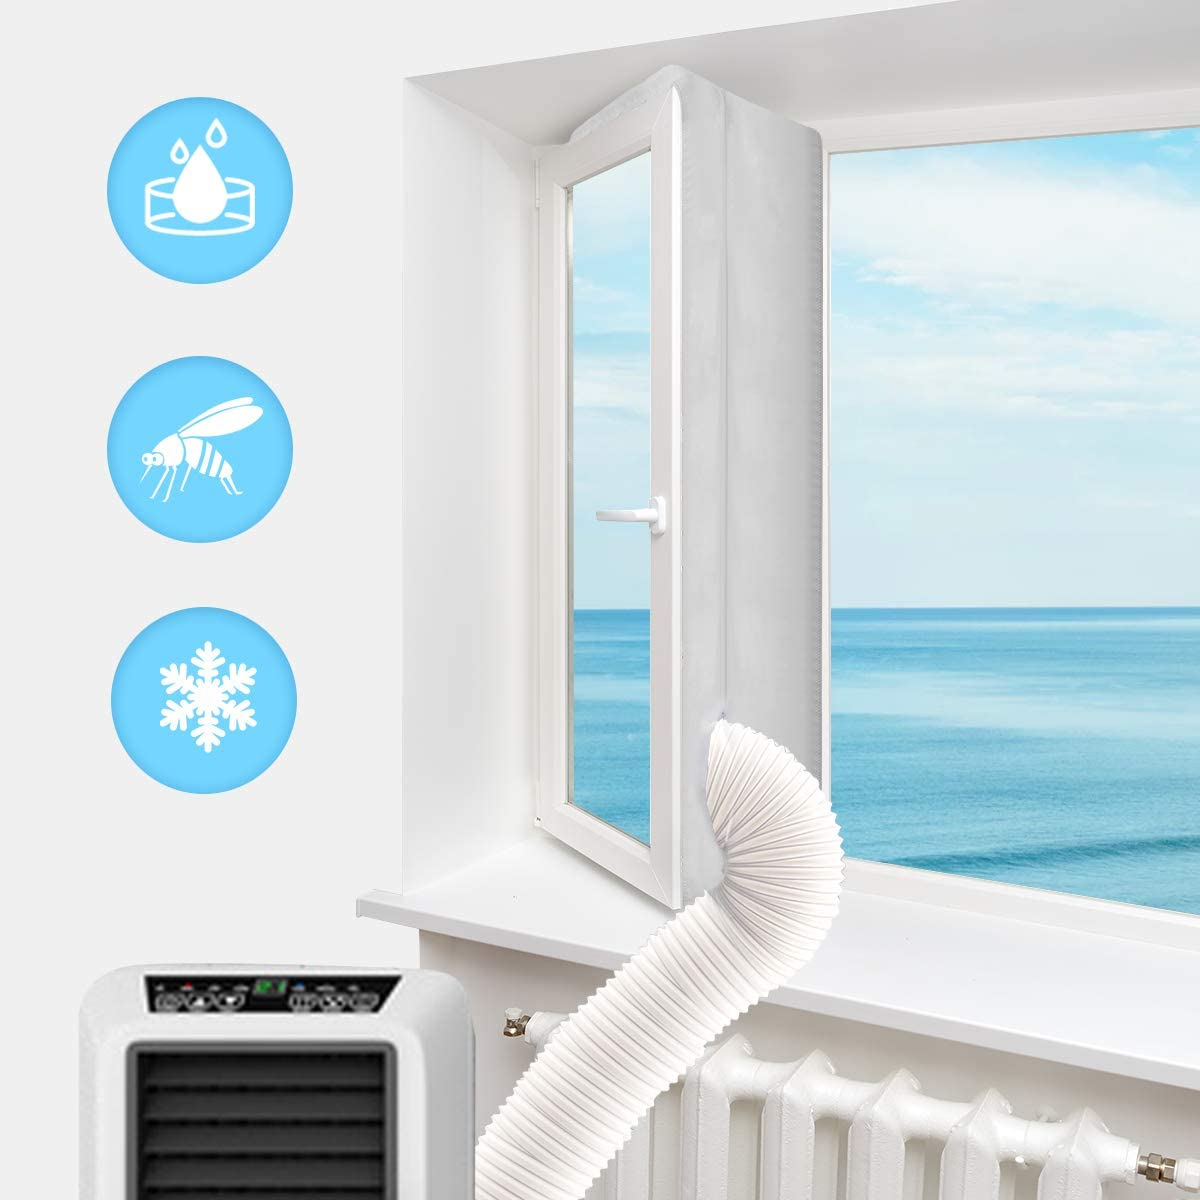 """Luxiv Portable Air Conditioner Window Kit, 158"""" Window Seal Kit for Portable Air-Conditioning with Zip and Adhesive Fastener White Airlock Sliding Window Seal Cloth for Mobile AC (118in/ 300cm)"""